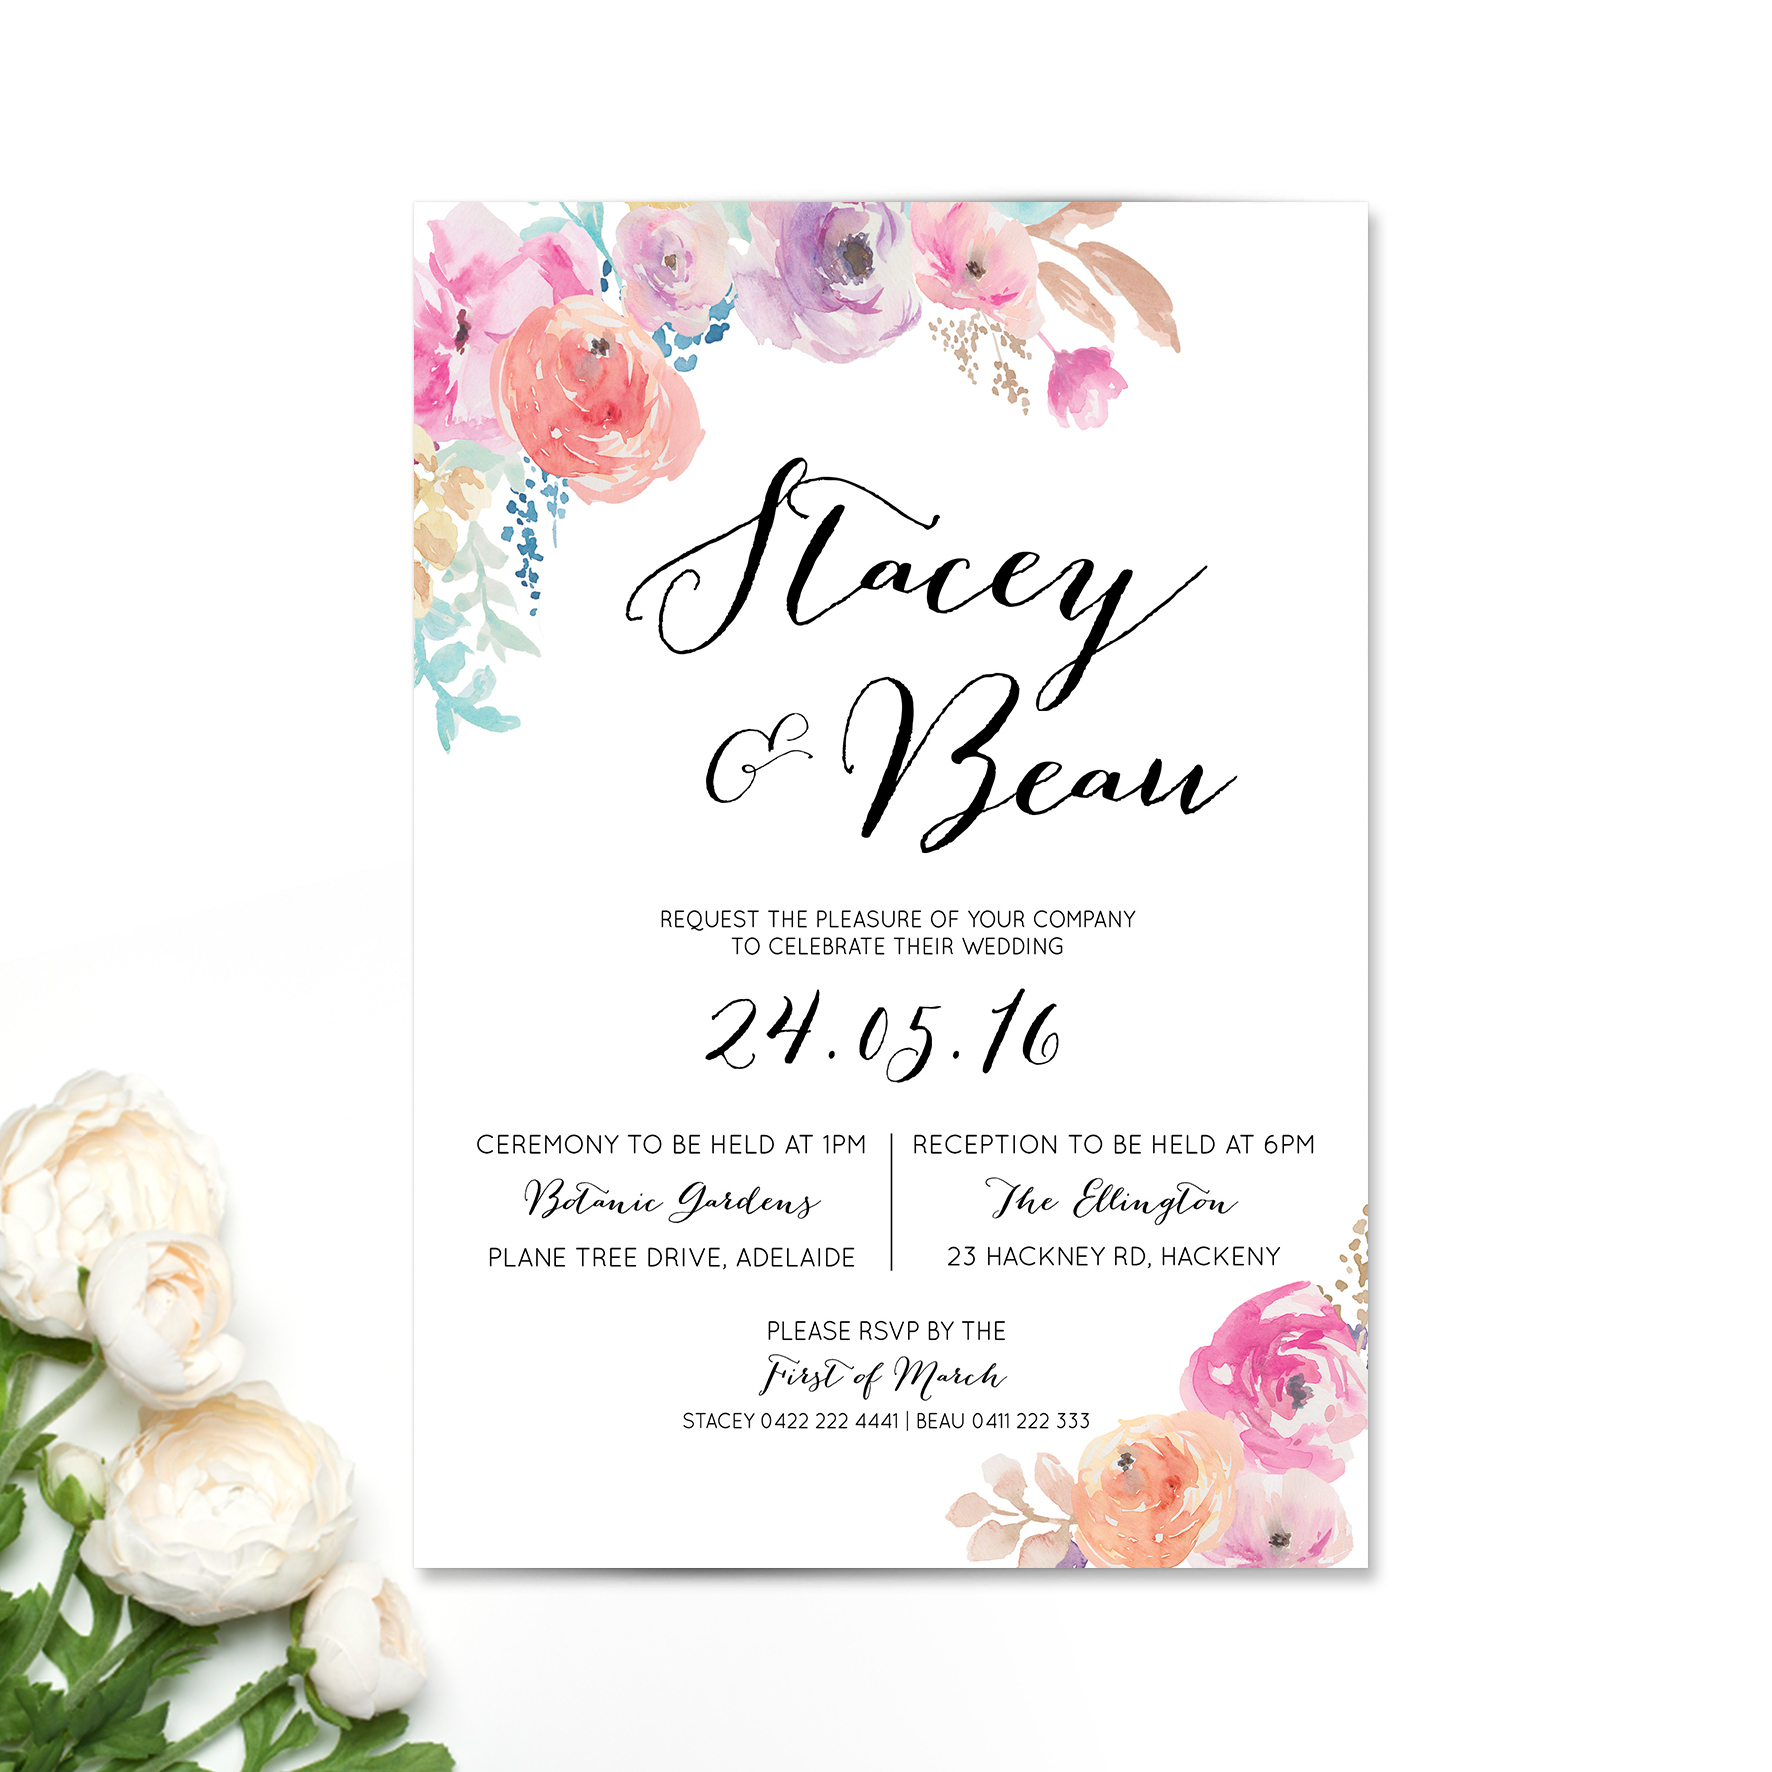 Rosey Watercolour Wedding Invitation